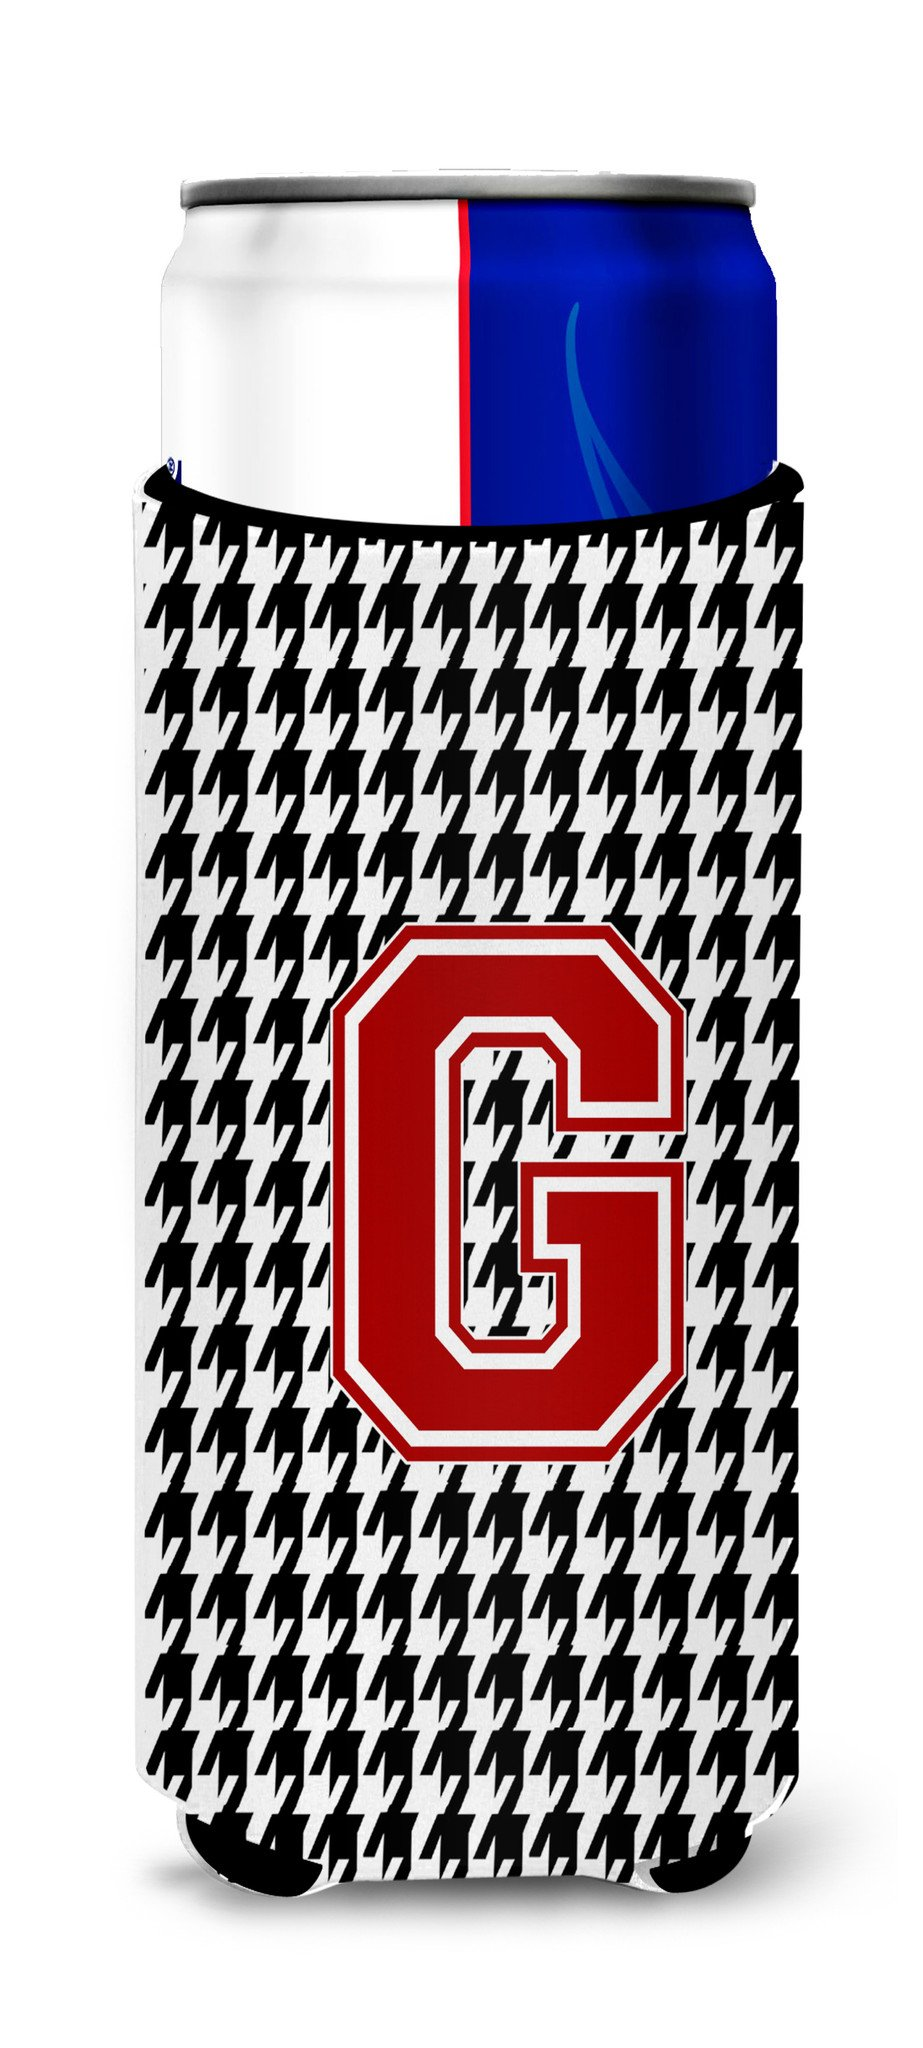 Monogram - Houndstooth  Letter G Ultra Beverage Insulators for slim cans CJ1021-GMUK by Caroline's Treasures